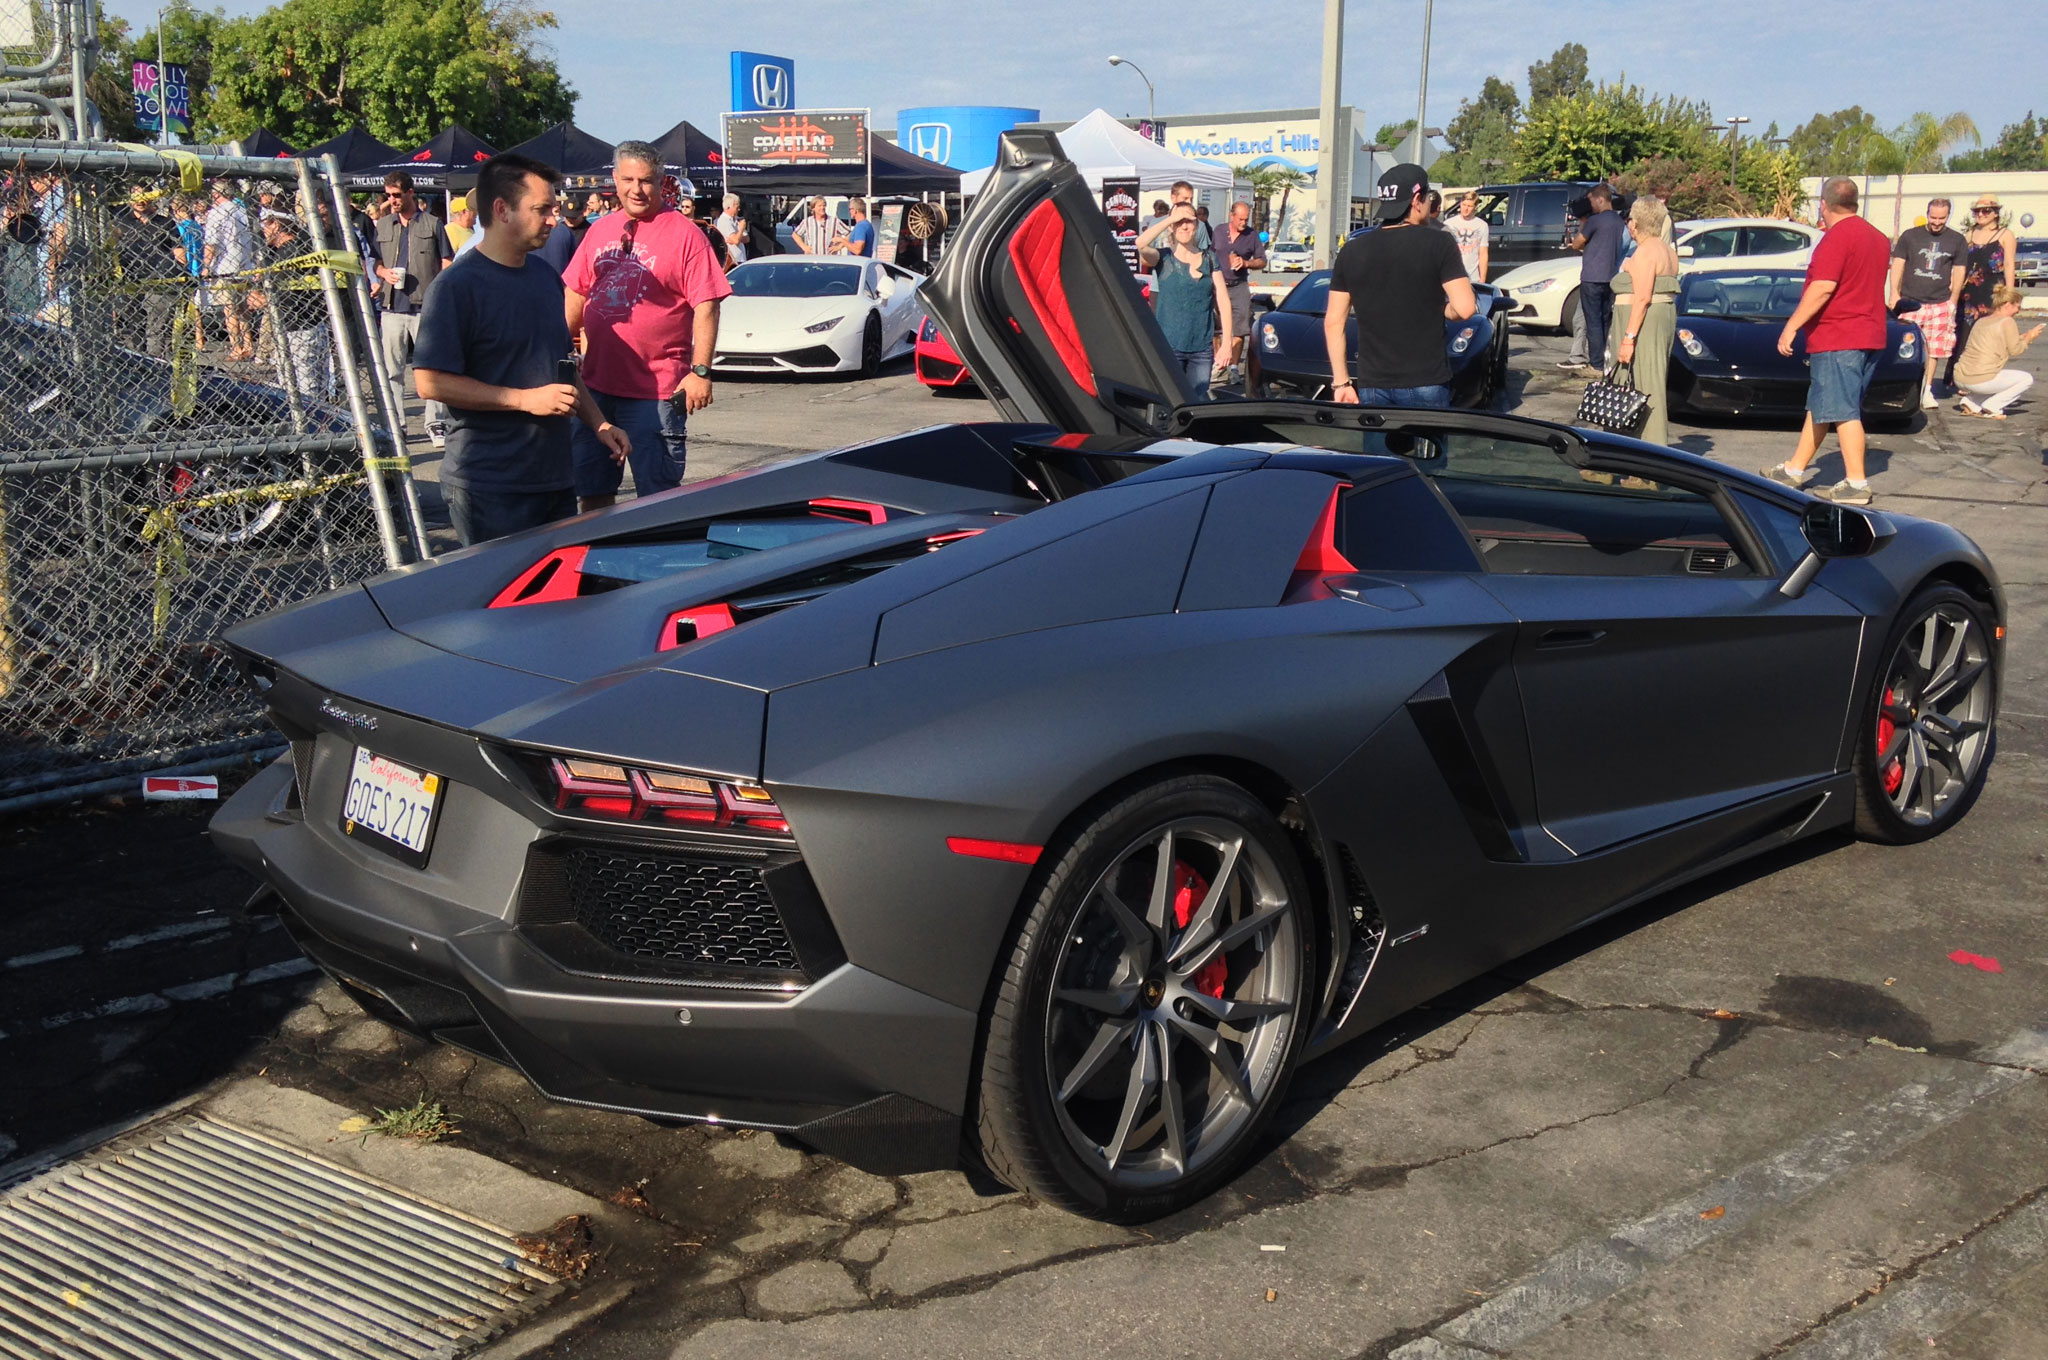 """The license plate on this Aventador LP 700-4 Roadster says what it does: """"Goes 217."""""""